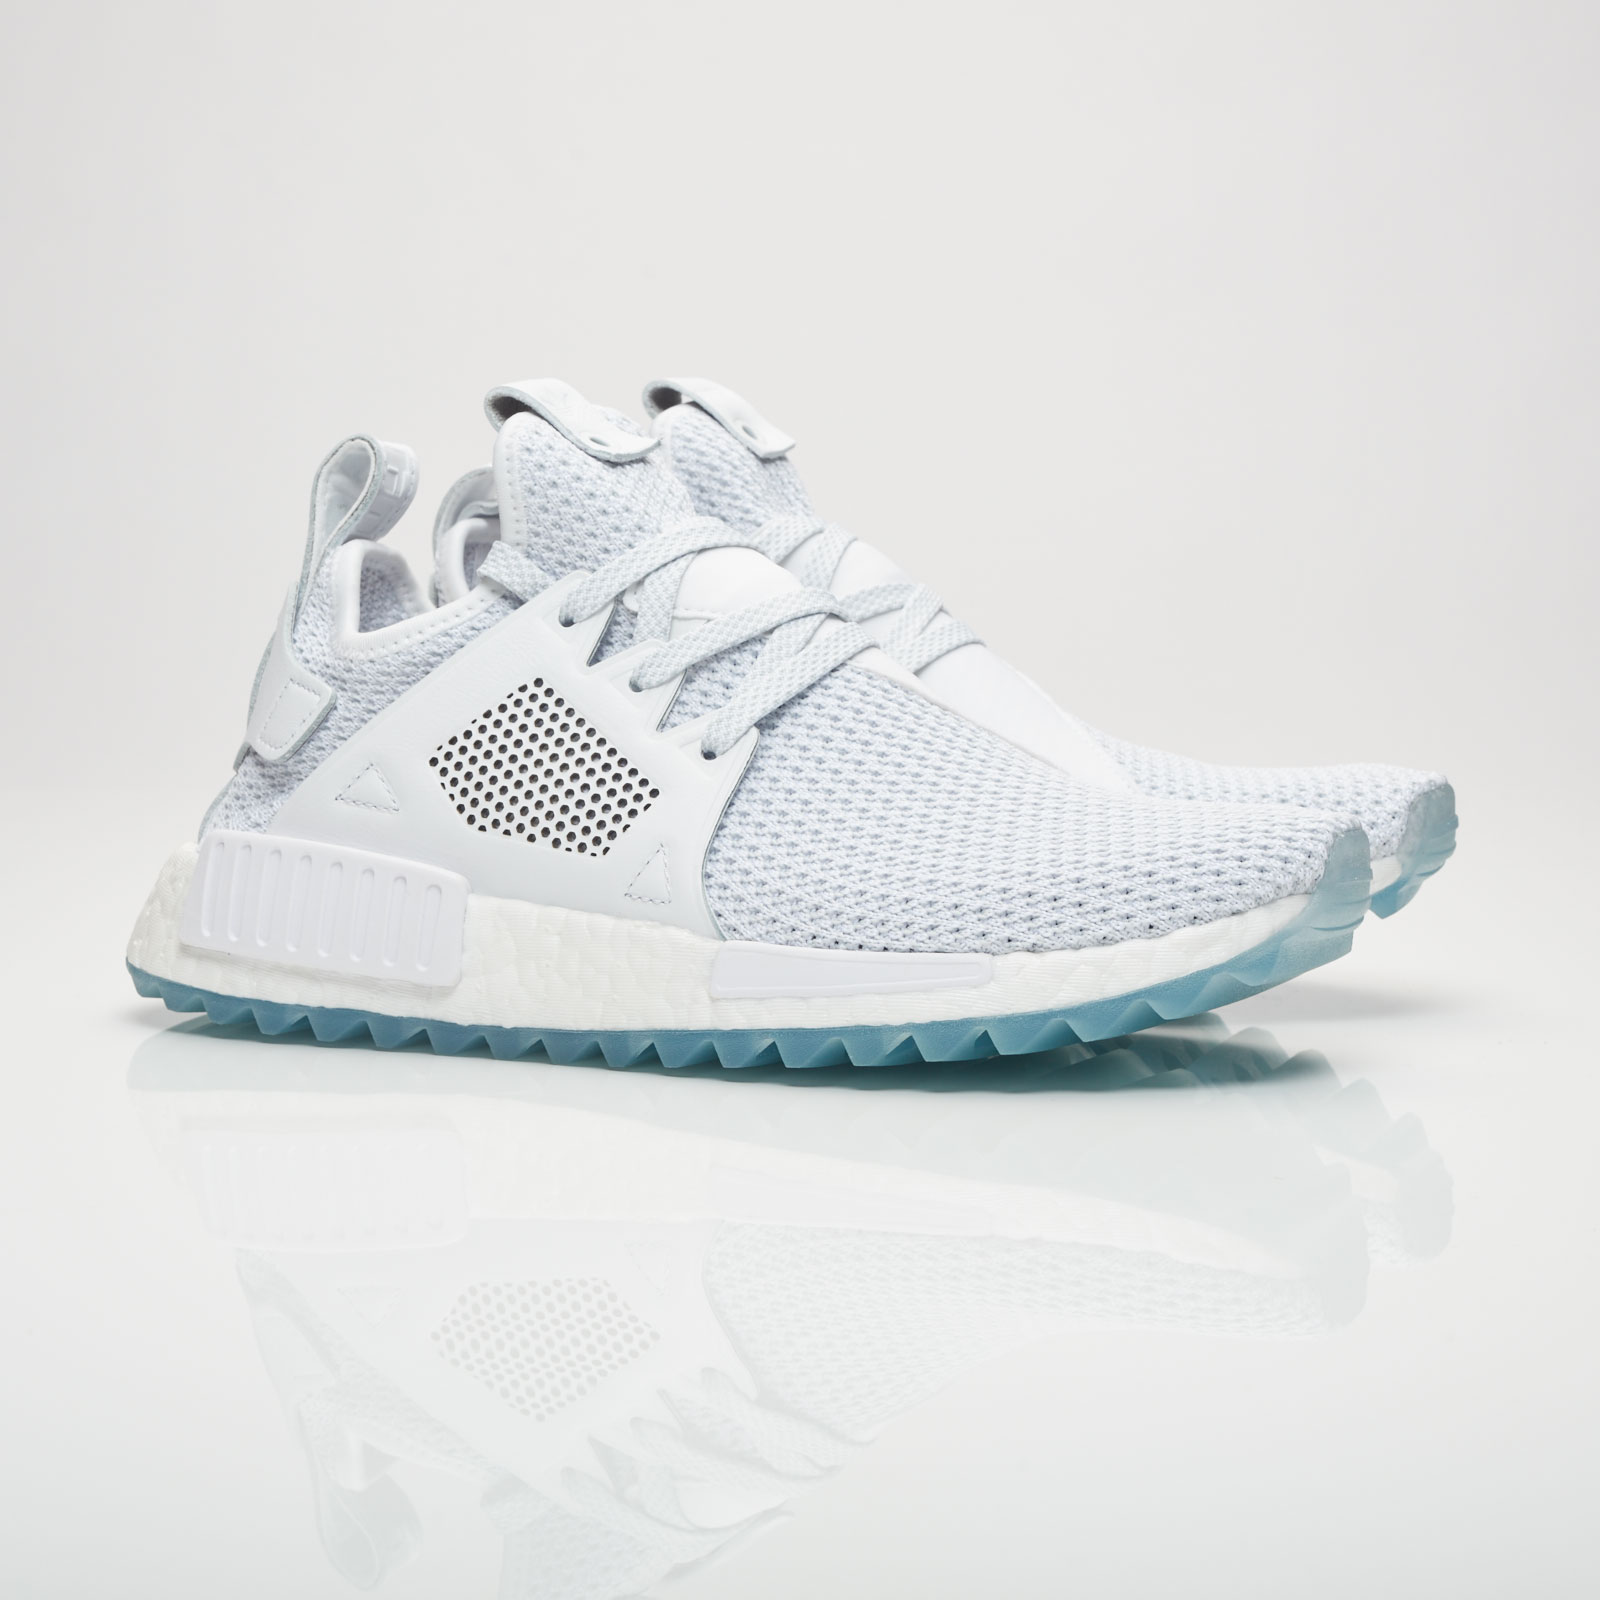 Adidas Nmd Xr1 Tr Titolo 'Titolo' - By3055 - Size 12.5 -